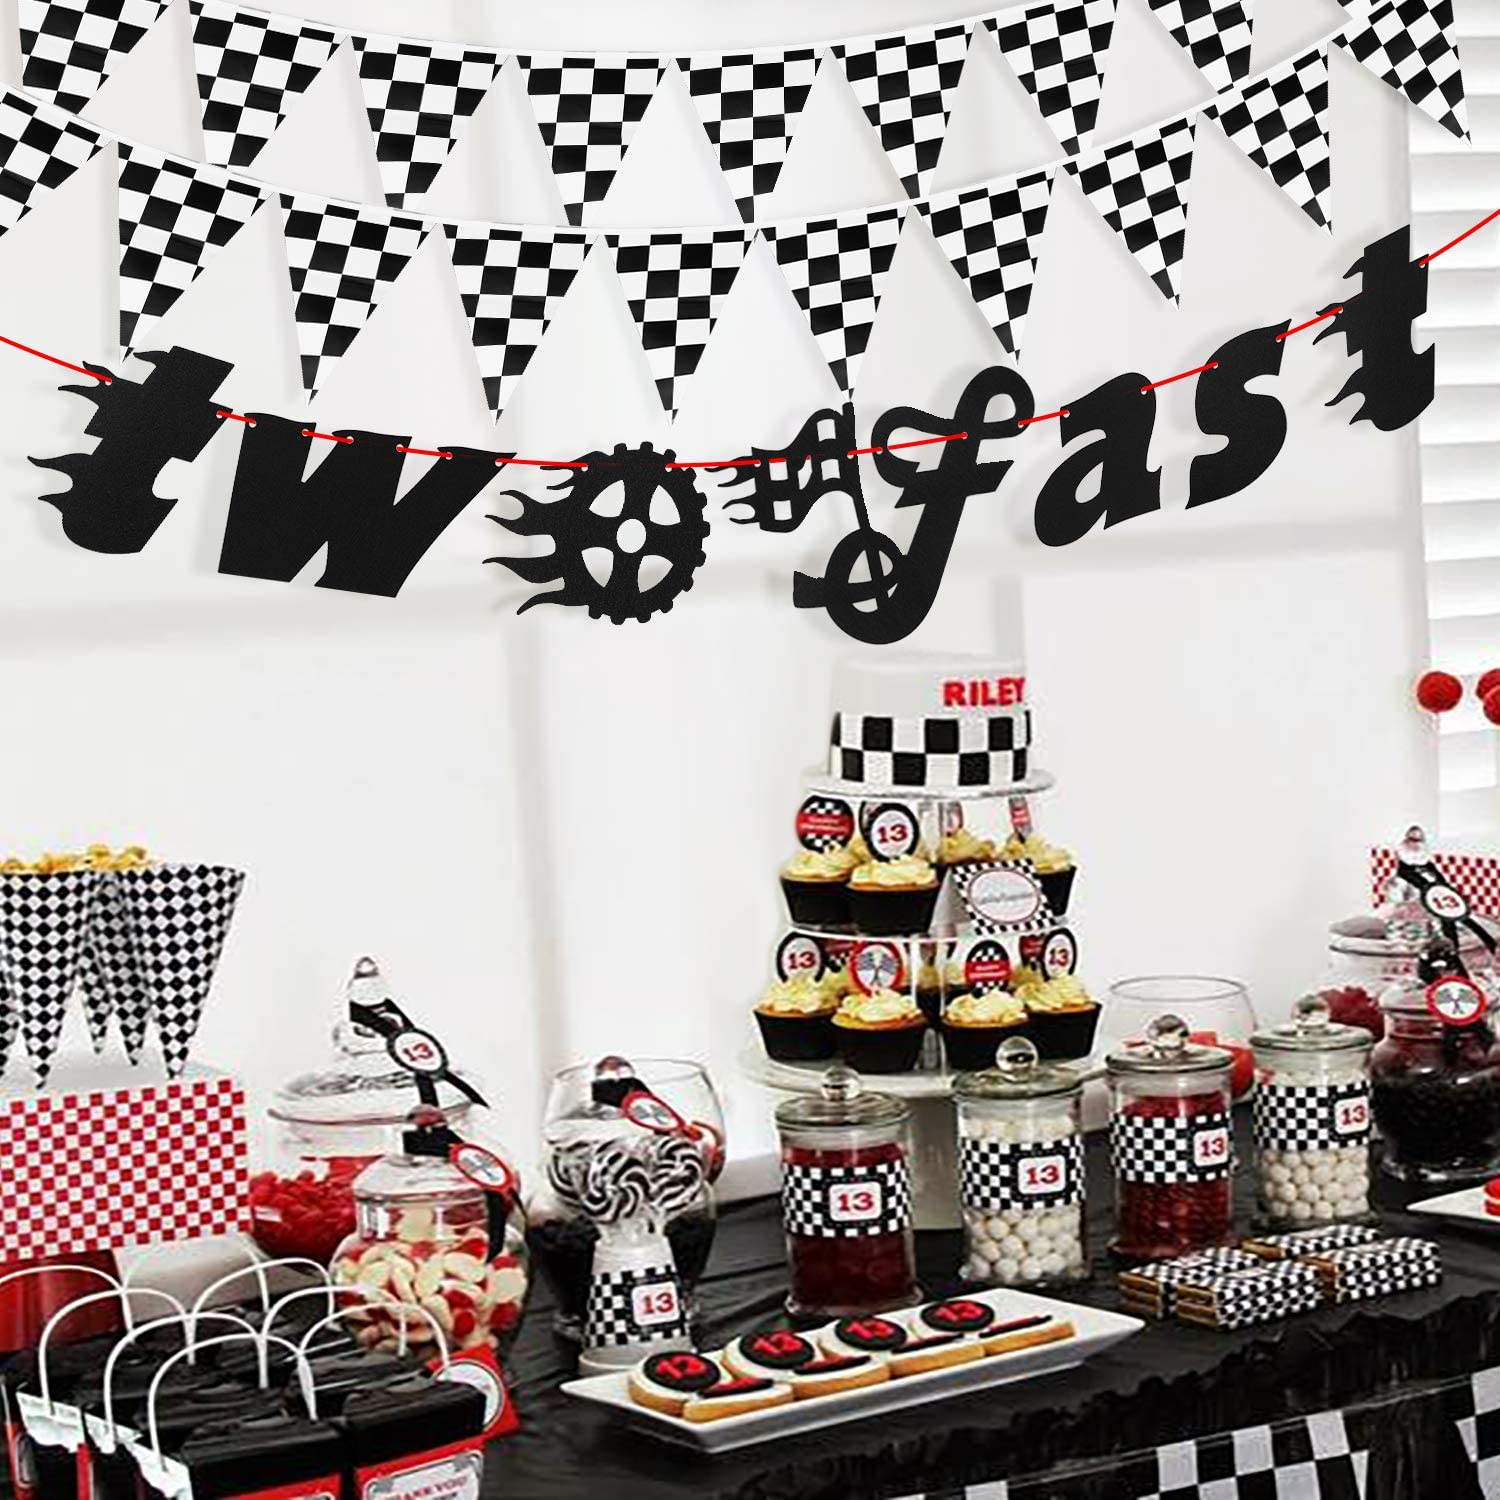 BeYumi Two Fast Birthday Decorations Let/'s Go Racing Party Perfect for Kids/' 2nd Second Birthday Party 28Pcs Race Car Theme Party Supplies Checkered Pennants Banner and Chequered Flags Balloons